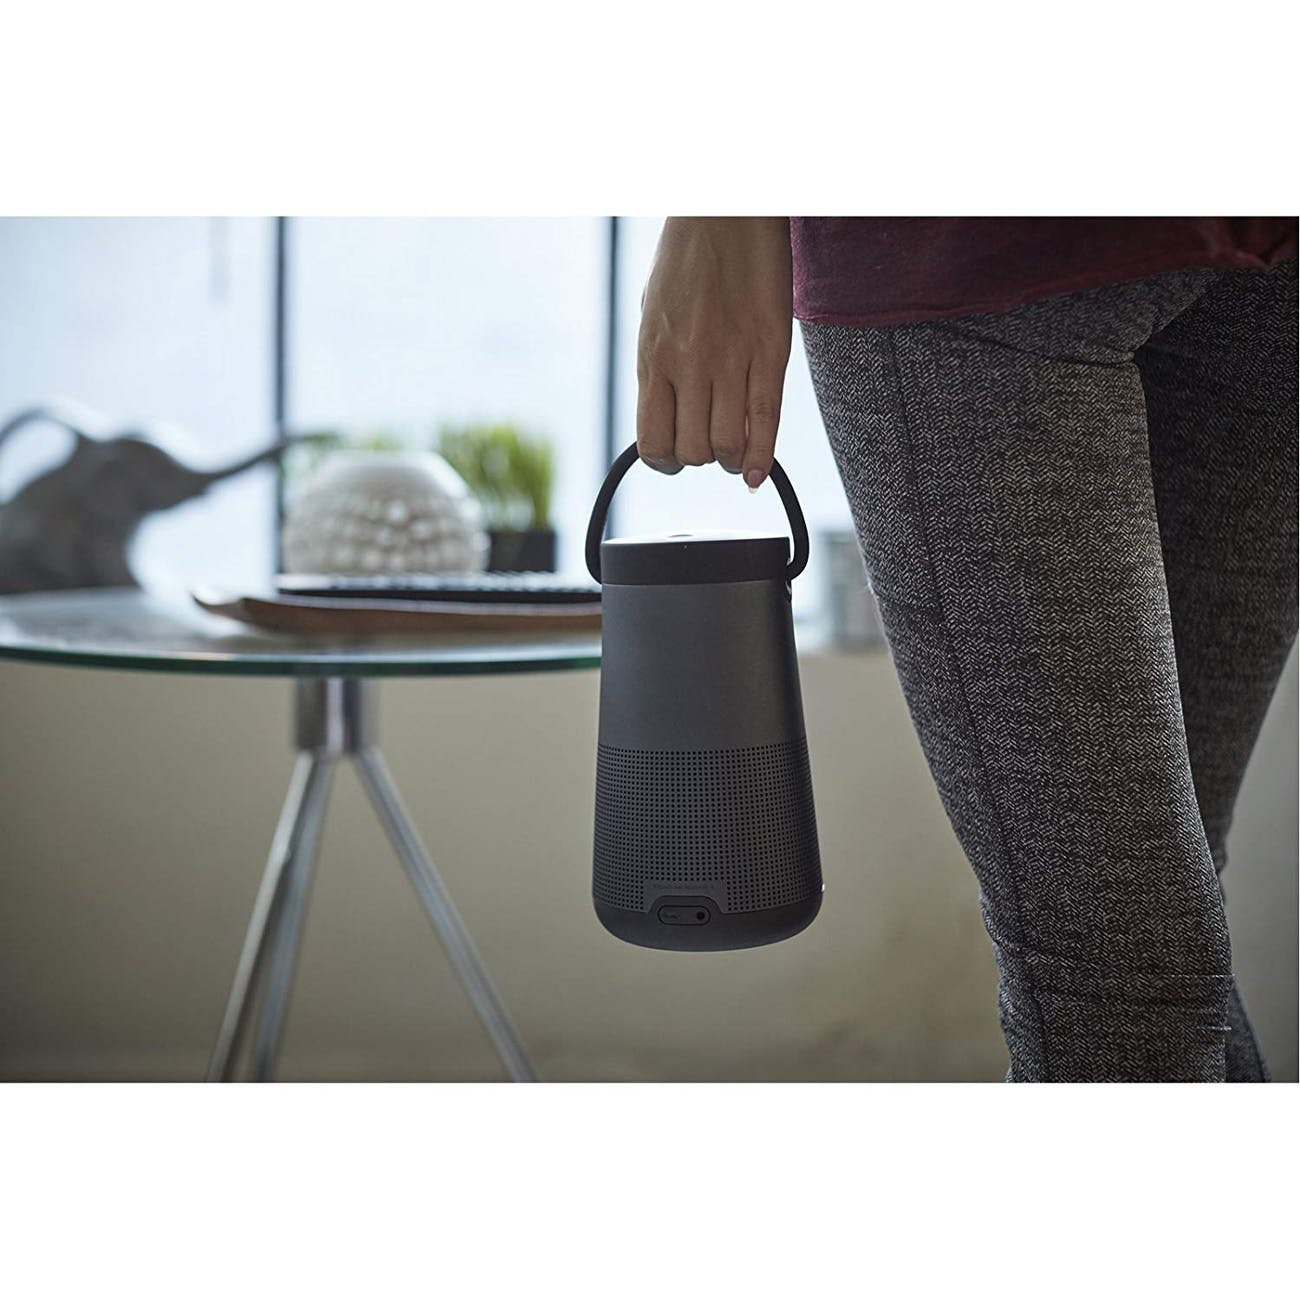 Bose SoundLink Revolve+ Wireless Bluetooth Speaker